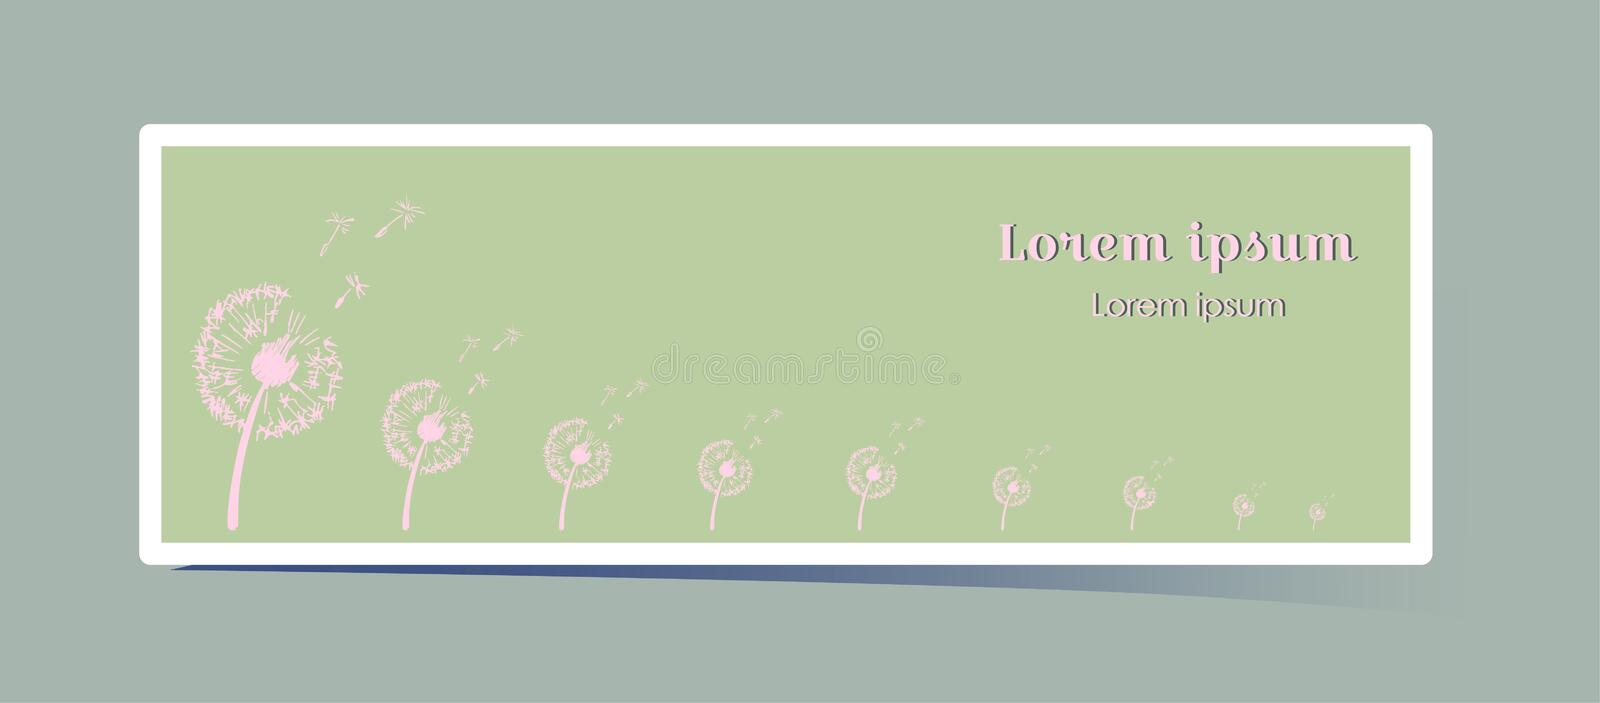 Delicate horizontal banner with dandelion flower. Pink plant silhouette on a grassy green background. With space for royalty free illustration